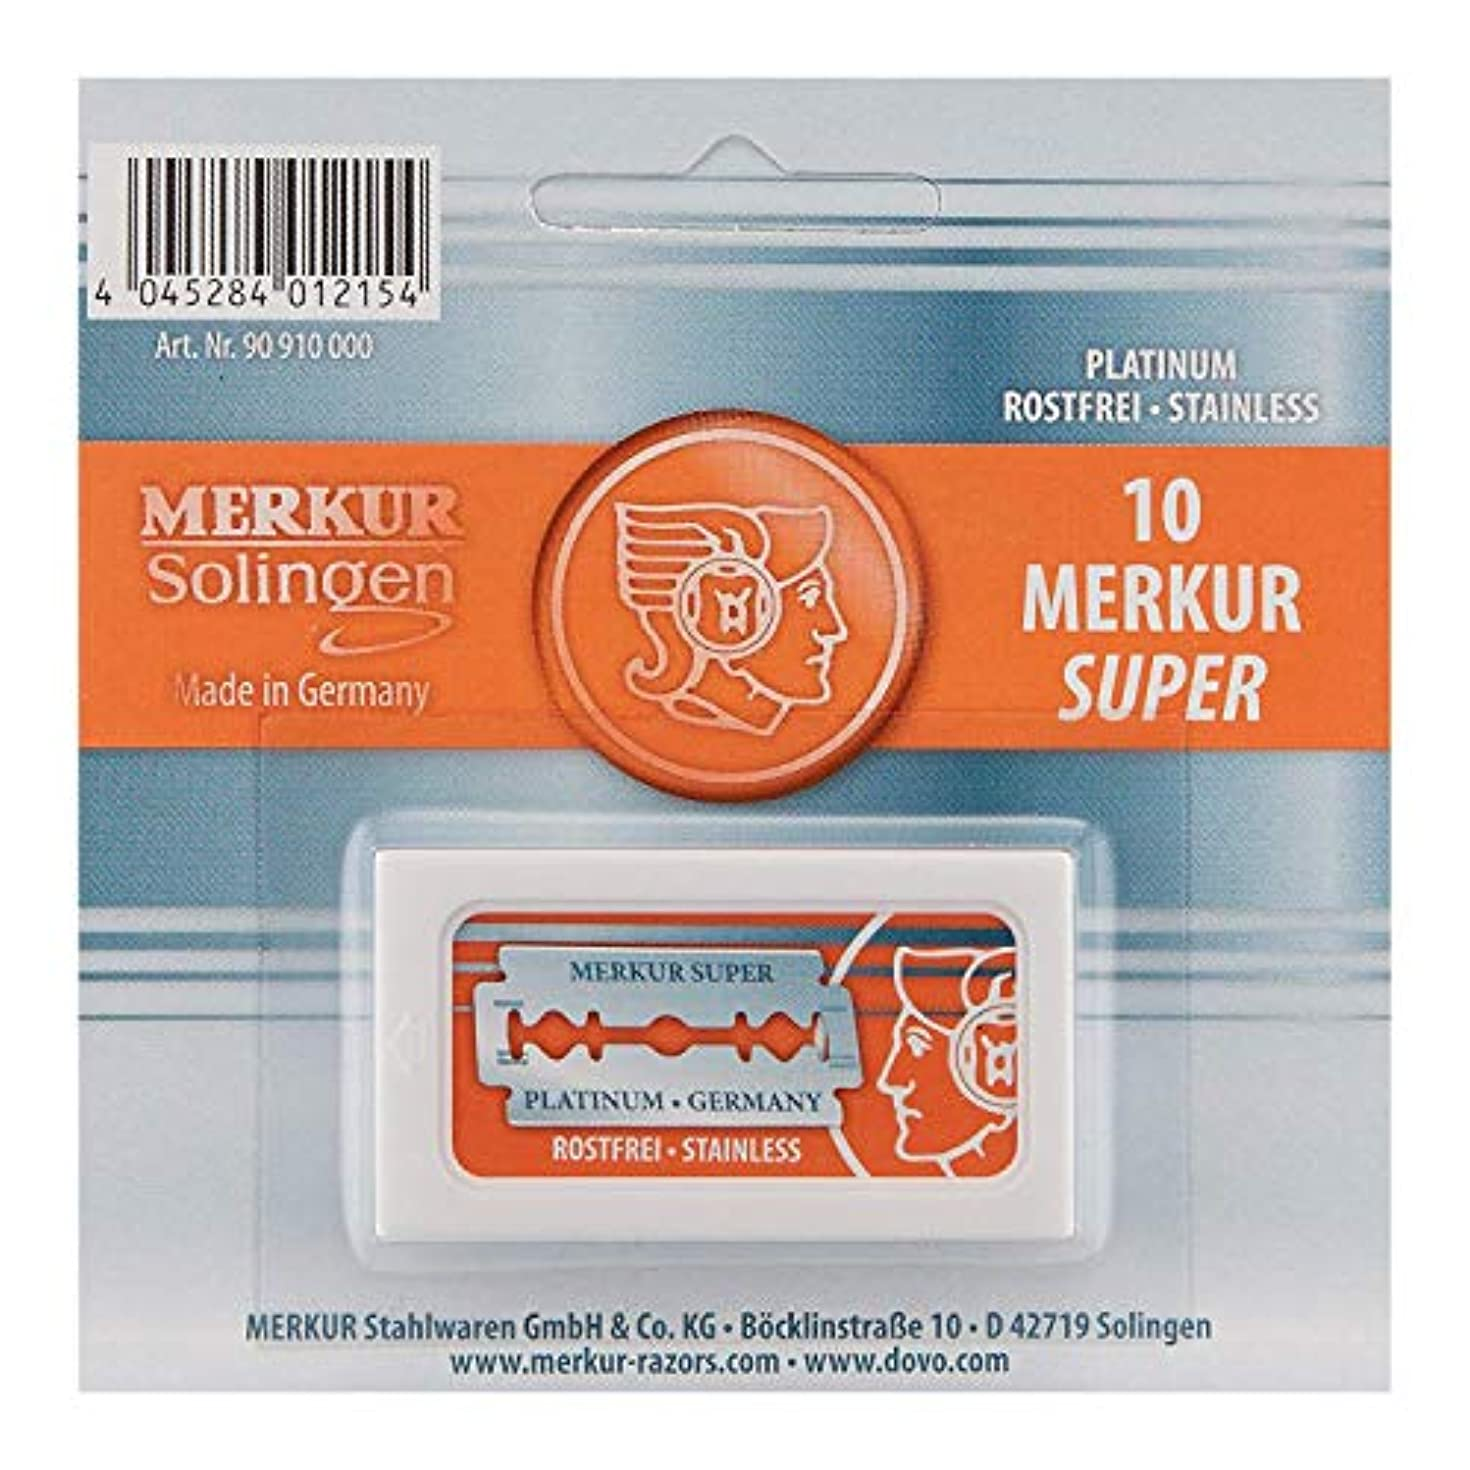 セットするからに変化する発信Merkur Stainless Platinum Safety Razor Blades 10 Pack